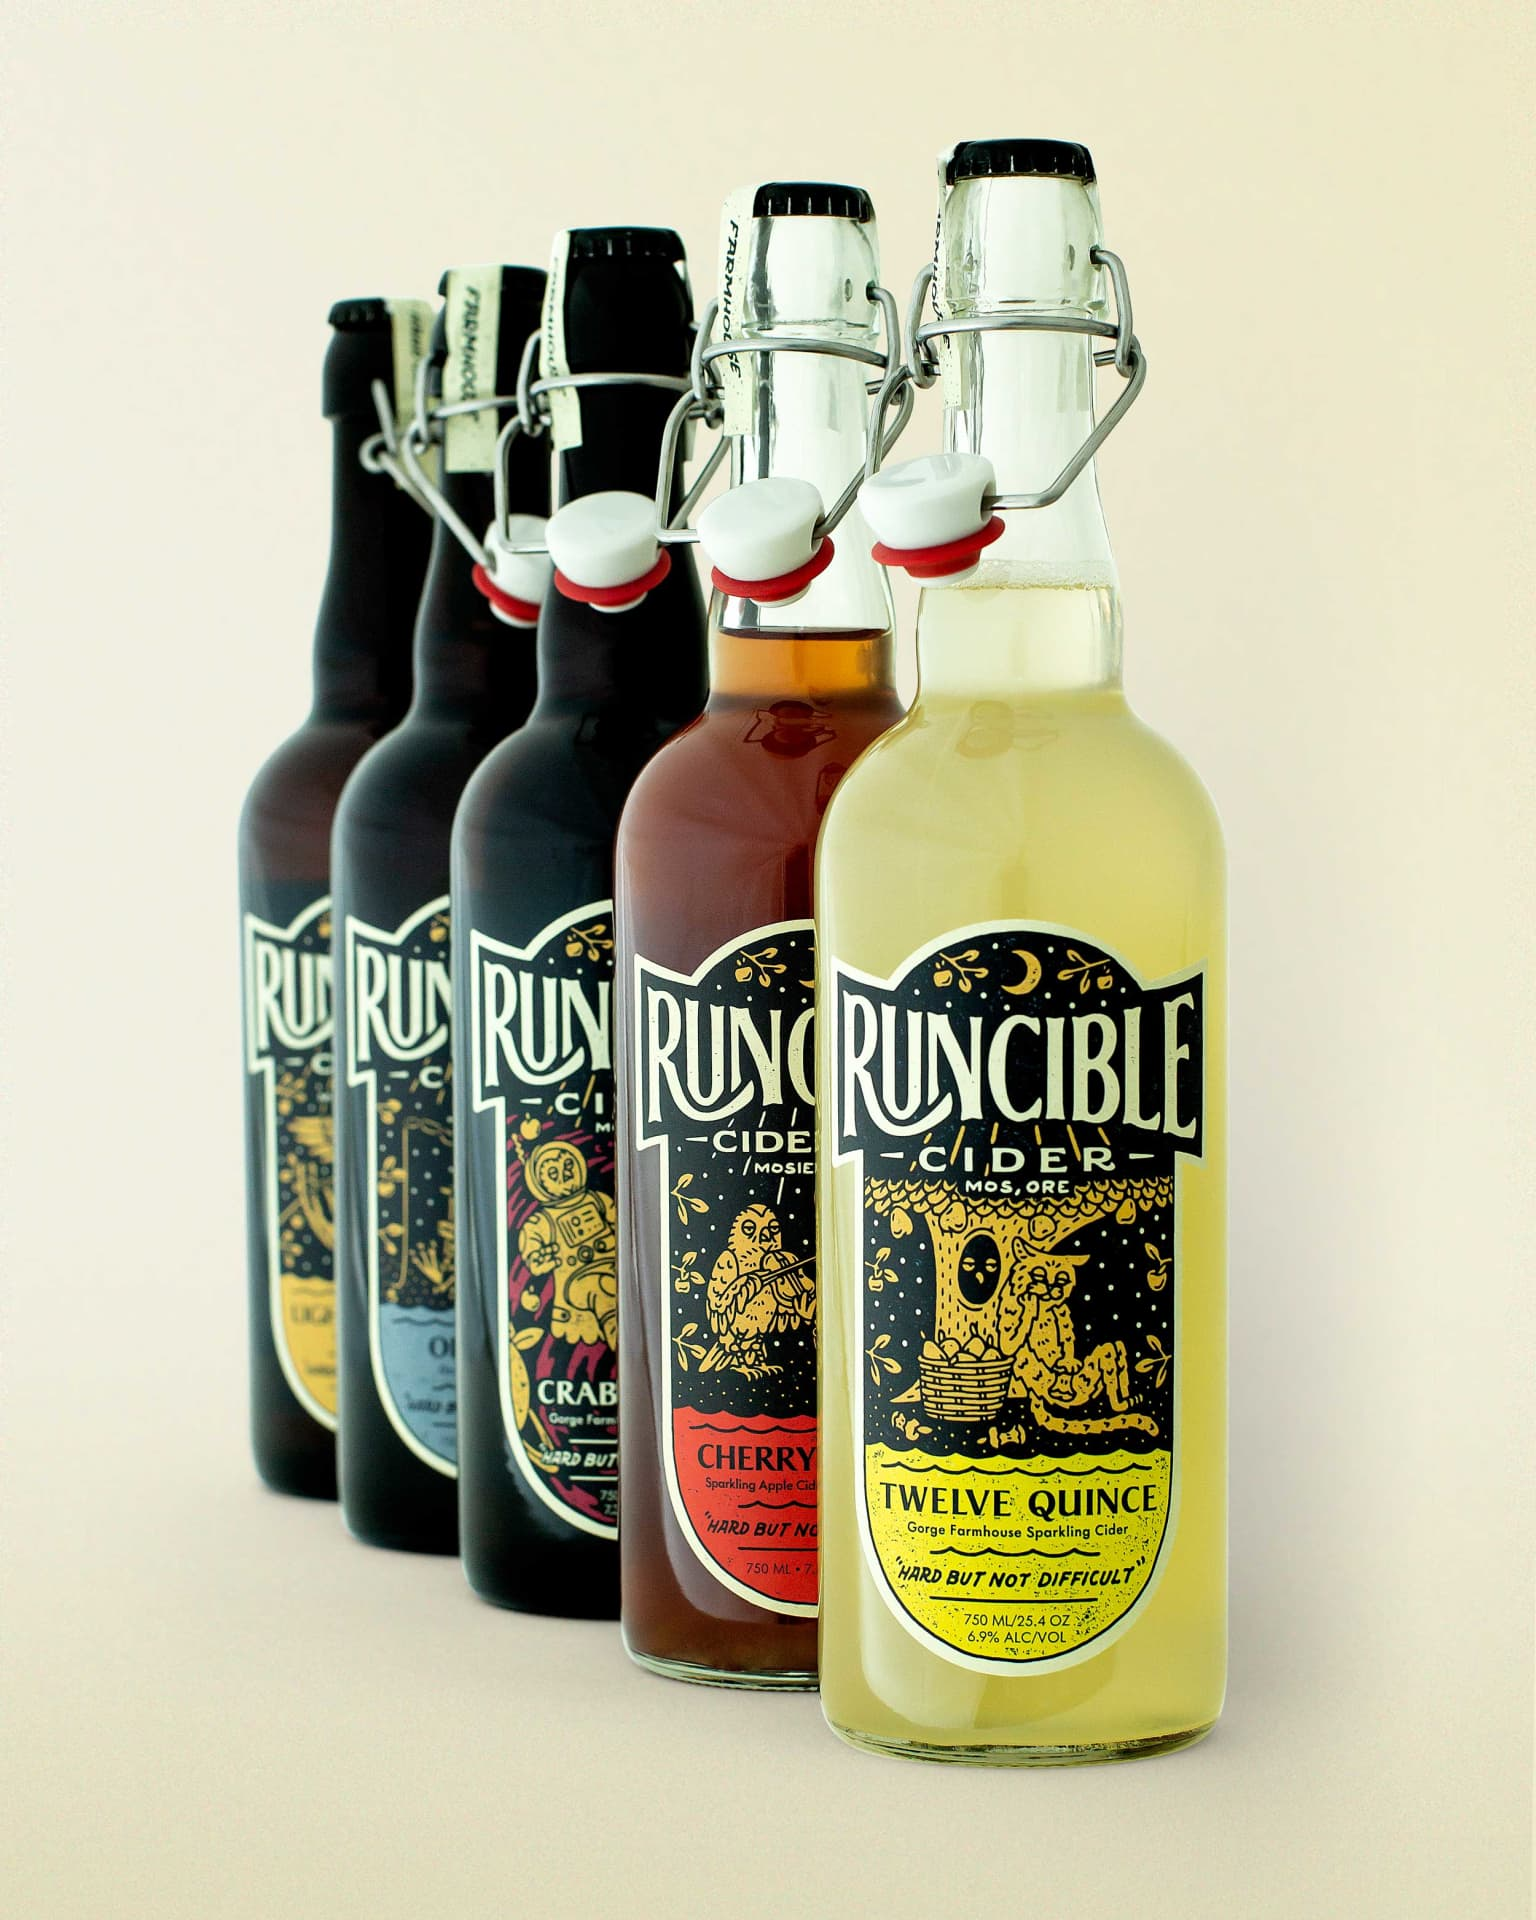 Runcible Cider Branding/Packaging